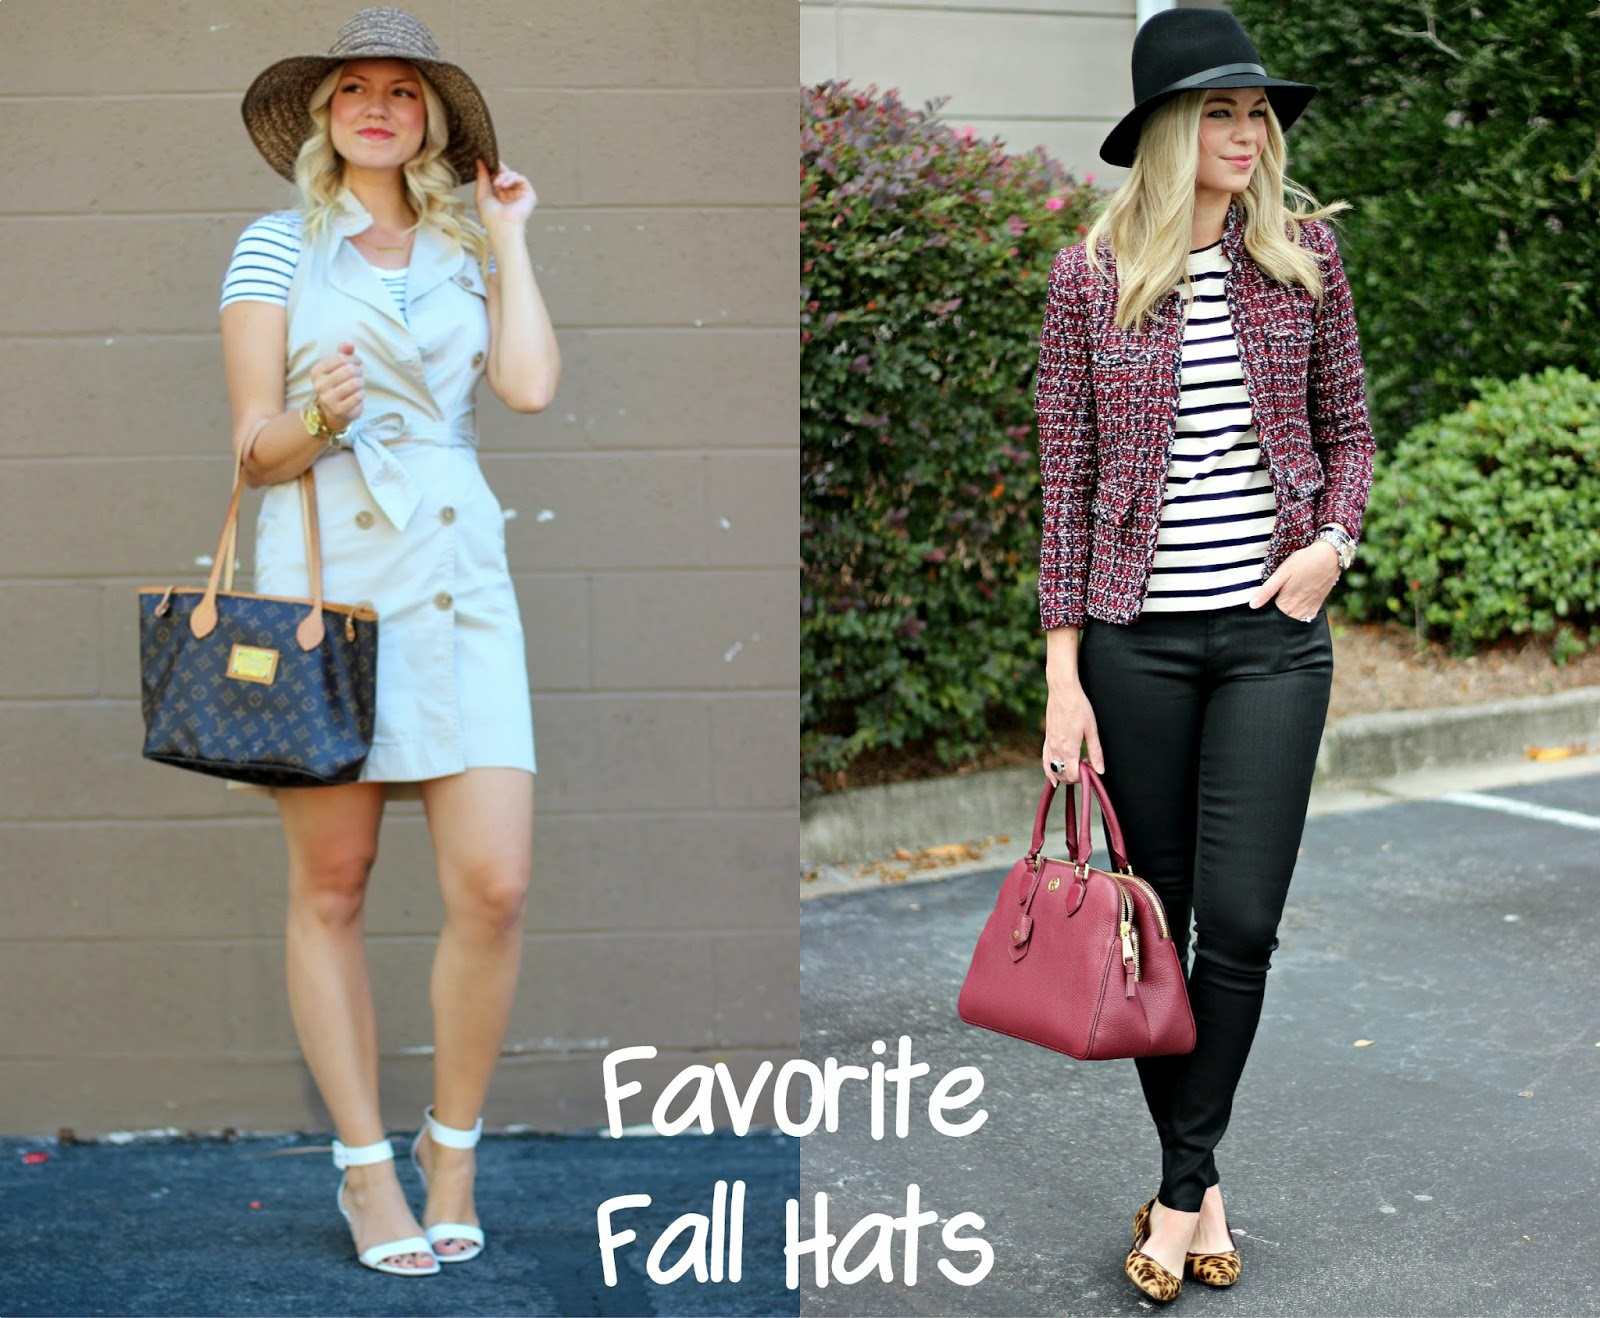 Favorite Fall Hats | Ft. Emily of Bows & Depos